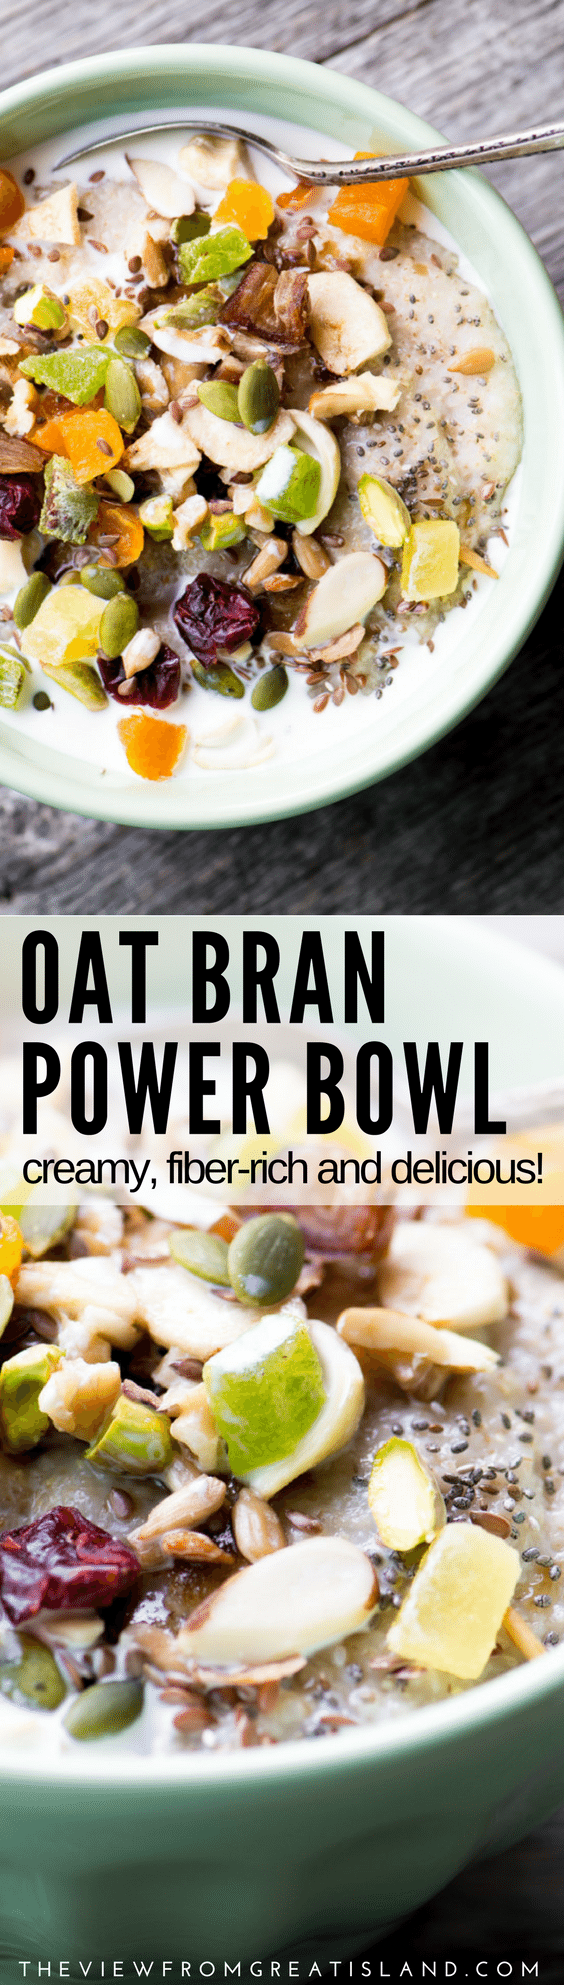 This Oat Bran Power Bowl recipe is a really cozy way to fuel your day ~ oat bran is creamier, has more fiber, and keeps you satisfied even longer than regular oatmeal. We love it! #breakfast #oatmeal #porridge #glutenfree #cereal #healthy #highfiber #nutrition #glowbowl #breakfastbowl #oats #wholegrain #grainbowl